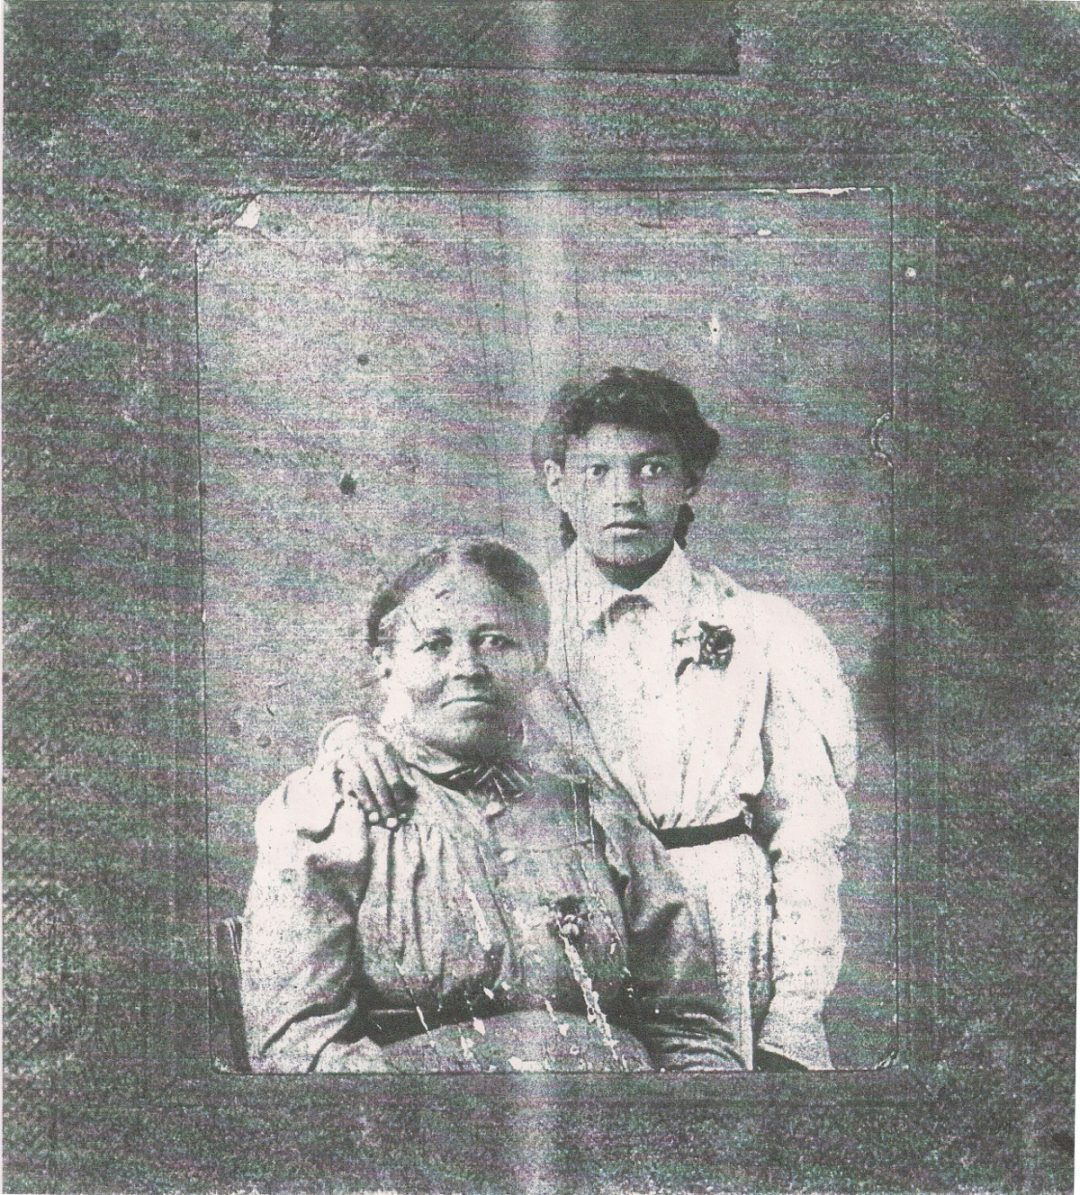 Mary Catherine (Goens/Goings) Marsh and Mary Manitou/Maniteau, ca. 1895, Benzie County, Michigan, Contributed by Shelley Murphy